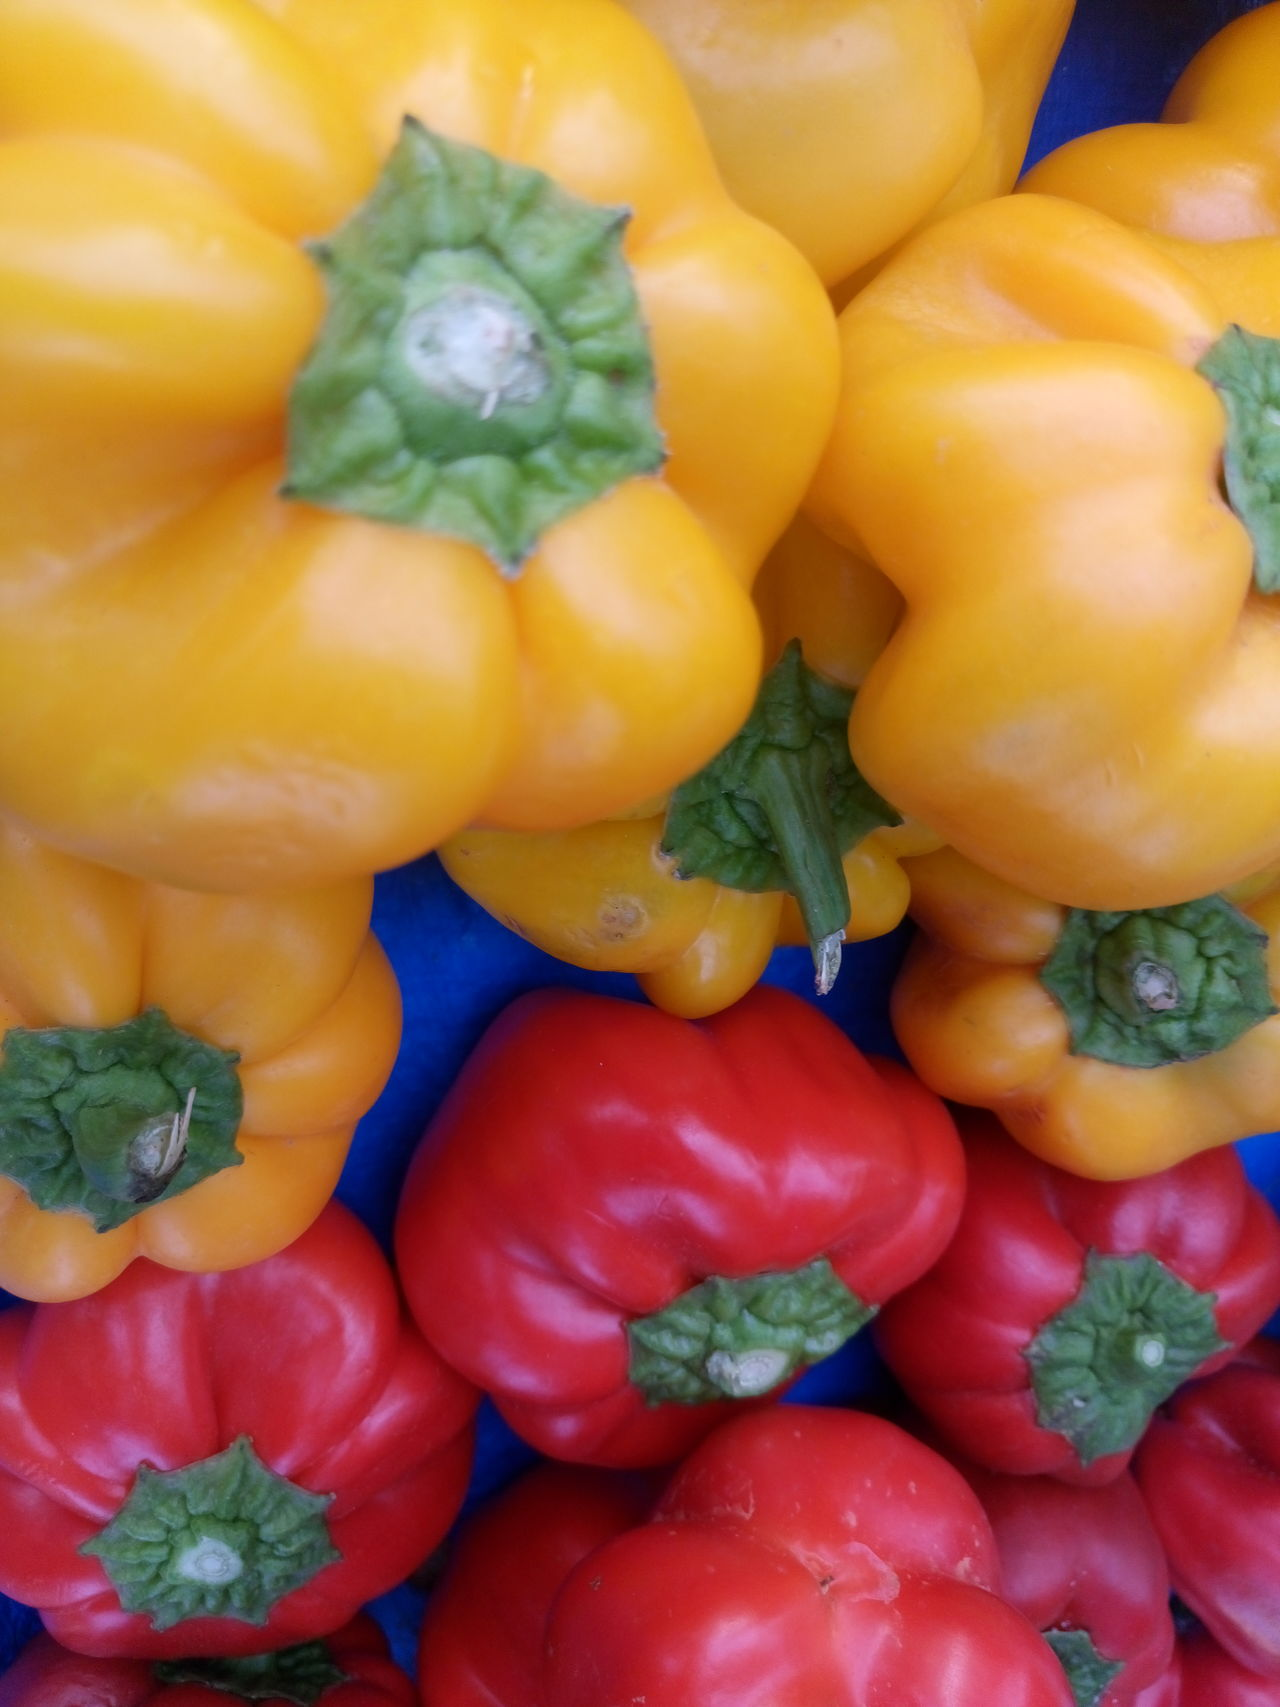 Backgrounds Bell Pepper Close-up Day Food Food And Drink Freshness Fruit Full Frame Healthy Eating Multi Colored No People Red Bell Pepper Variation Vegetable Vegetable Market Yellow Yellow Bell Pepper